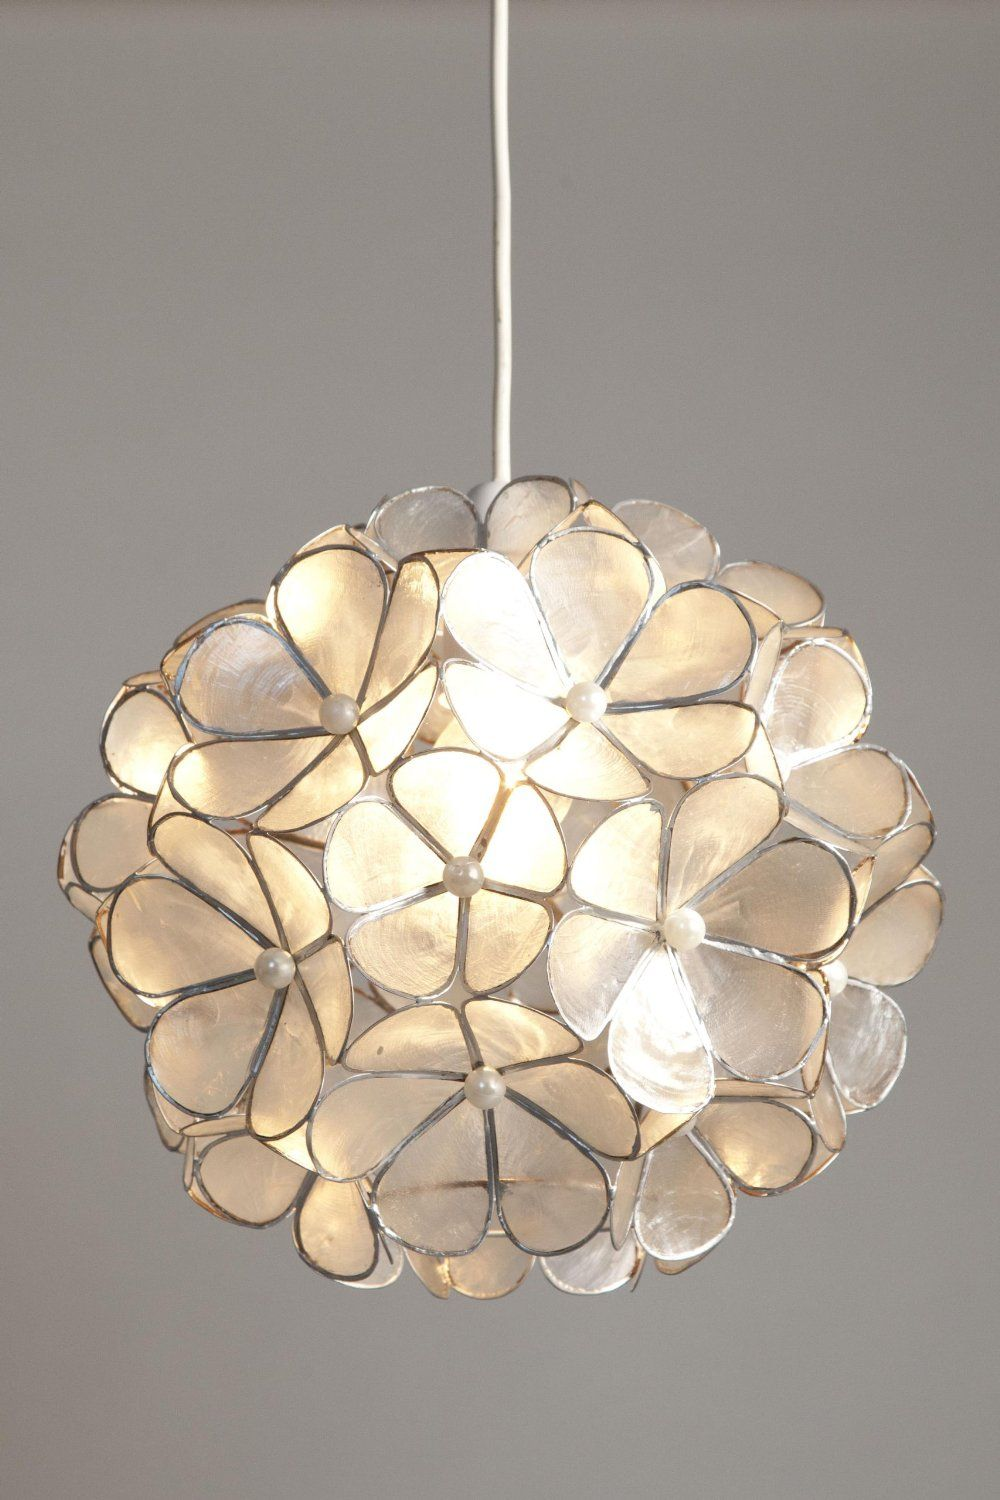 Unusual pendant lamps inspired by medusas digsdigs - Stylish Natural Capiz Shell Flower Ball Non Electric Ceiling Light Shade Pendant White Silver